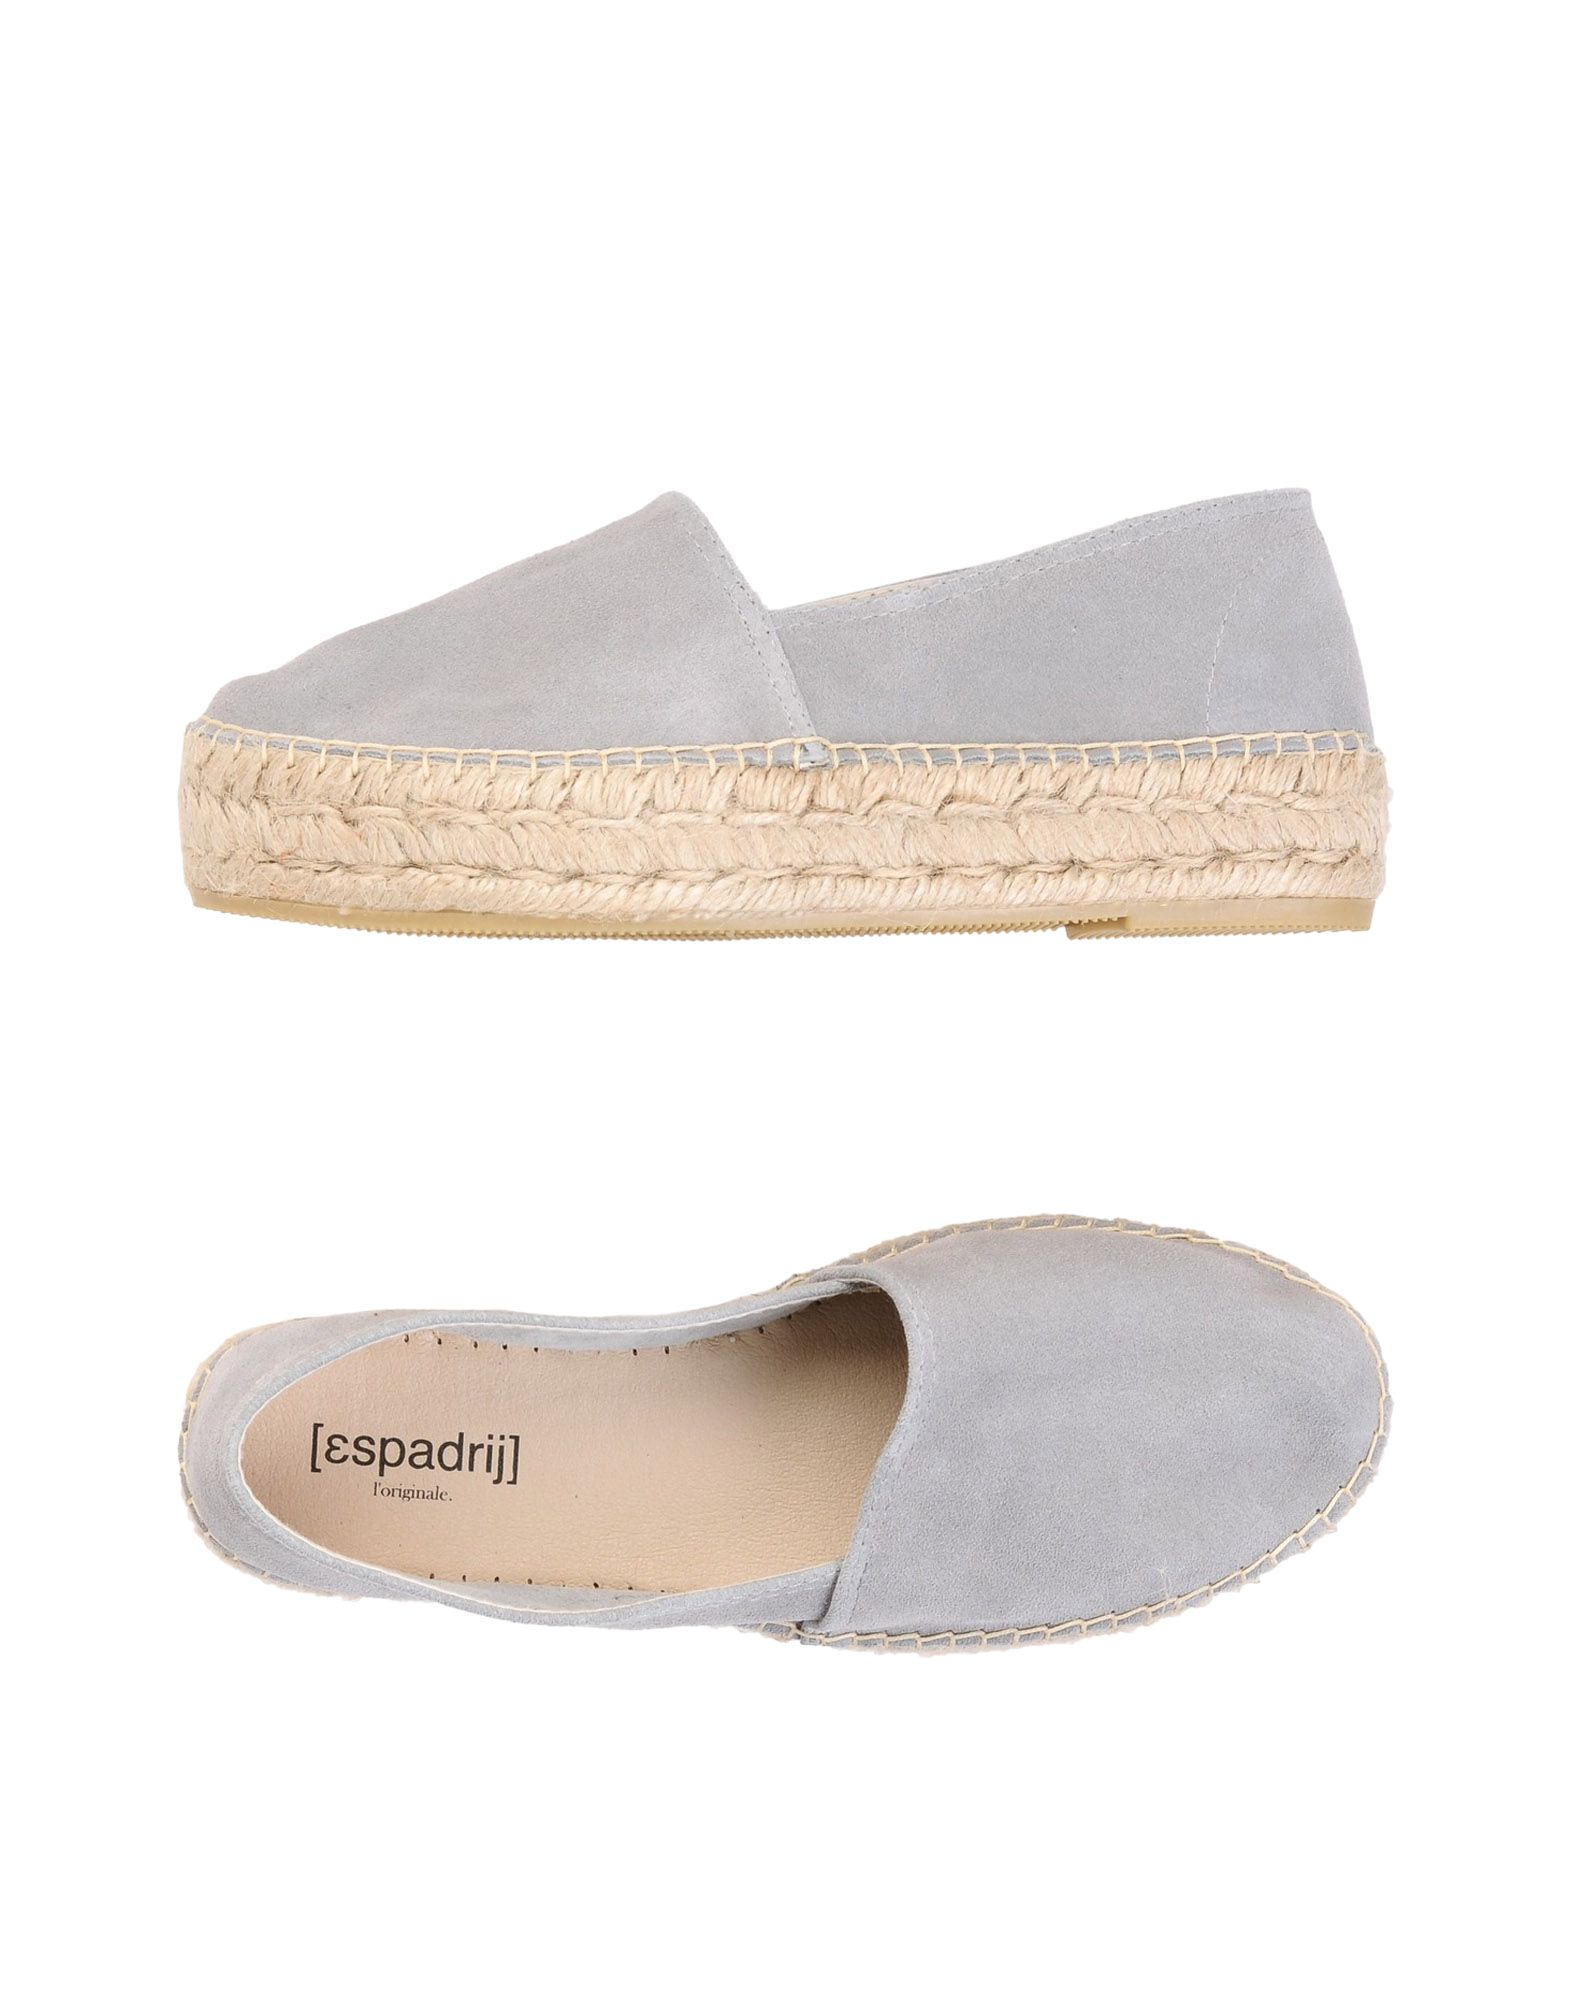 Espadrillas [Espadrij] Classic Velour High - Donna - 11454247GB